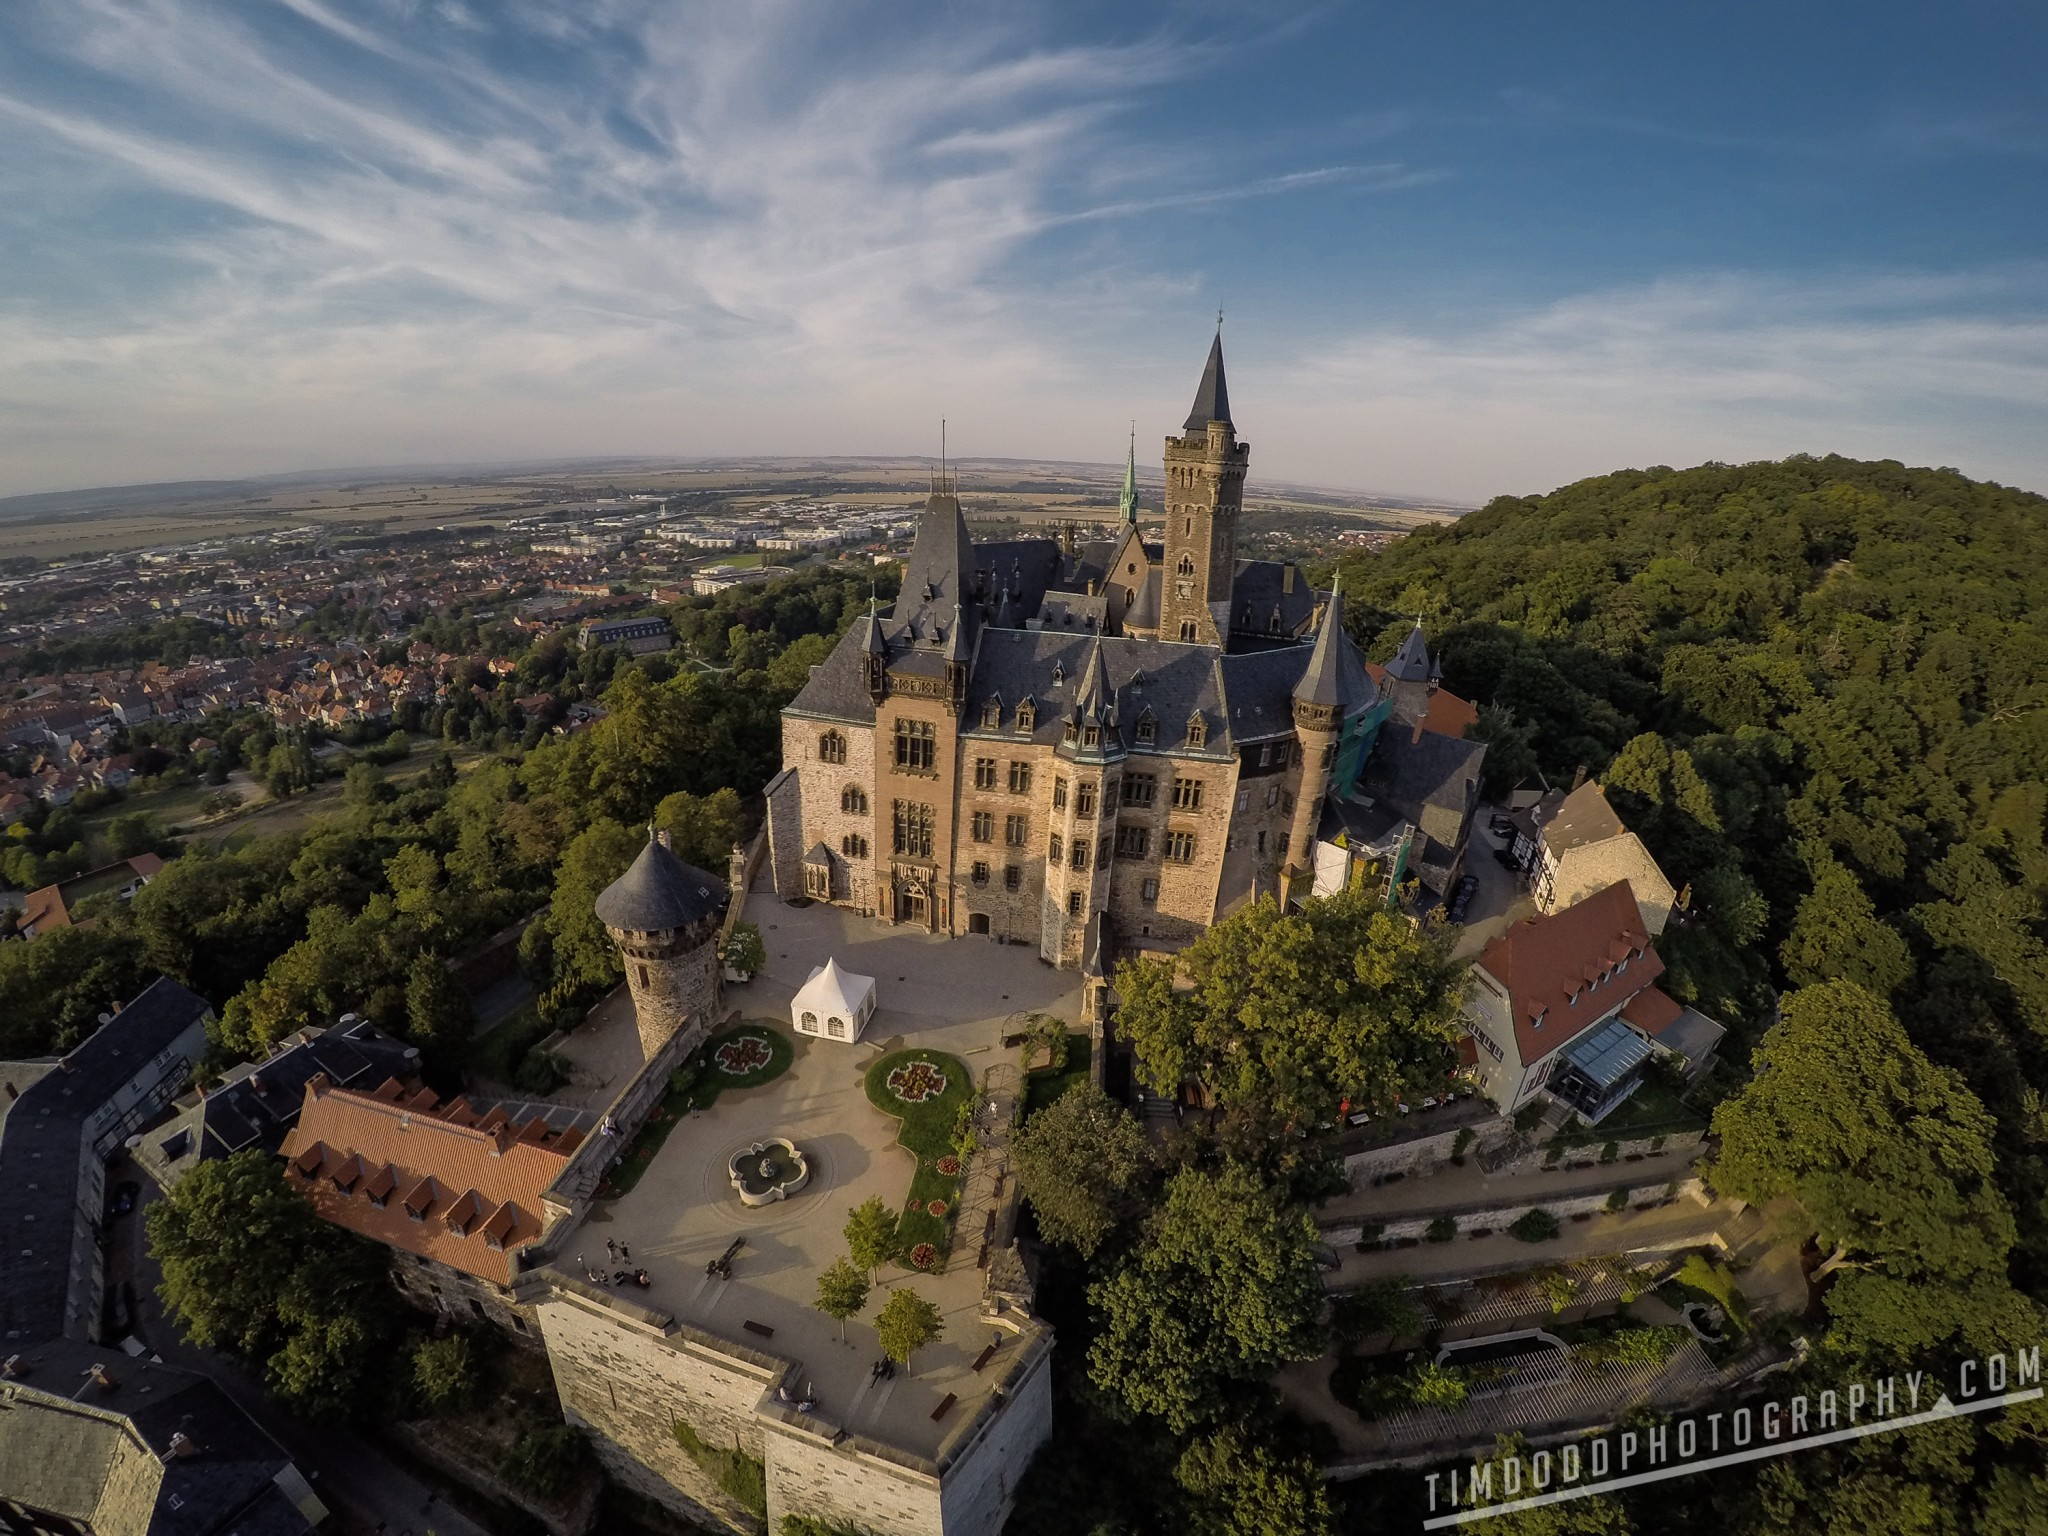 Wernigerode Castle, Wernigerode, Germany aerial beautiful Tim Dodd Photography